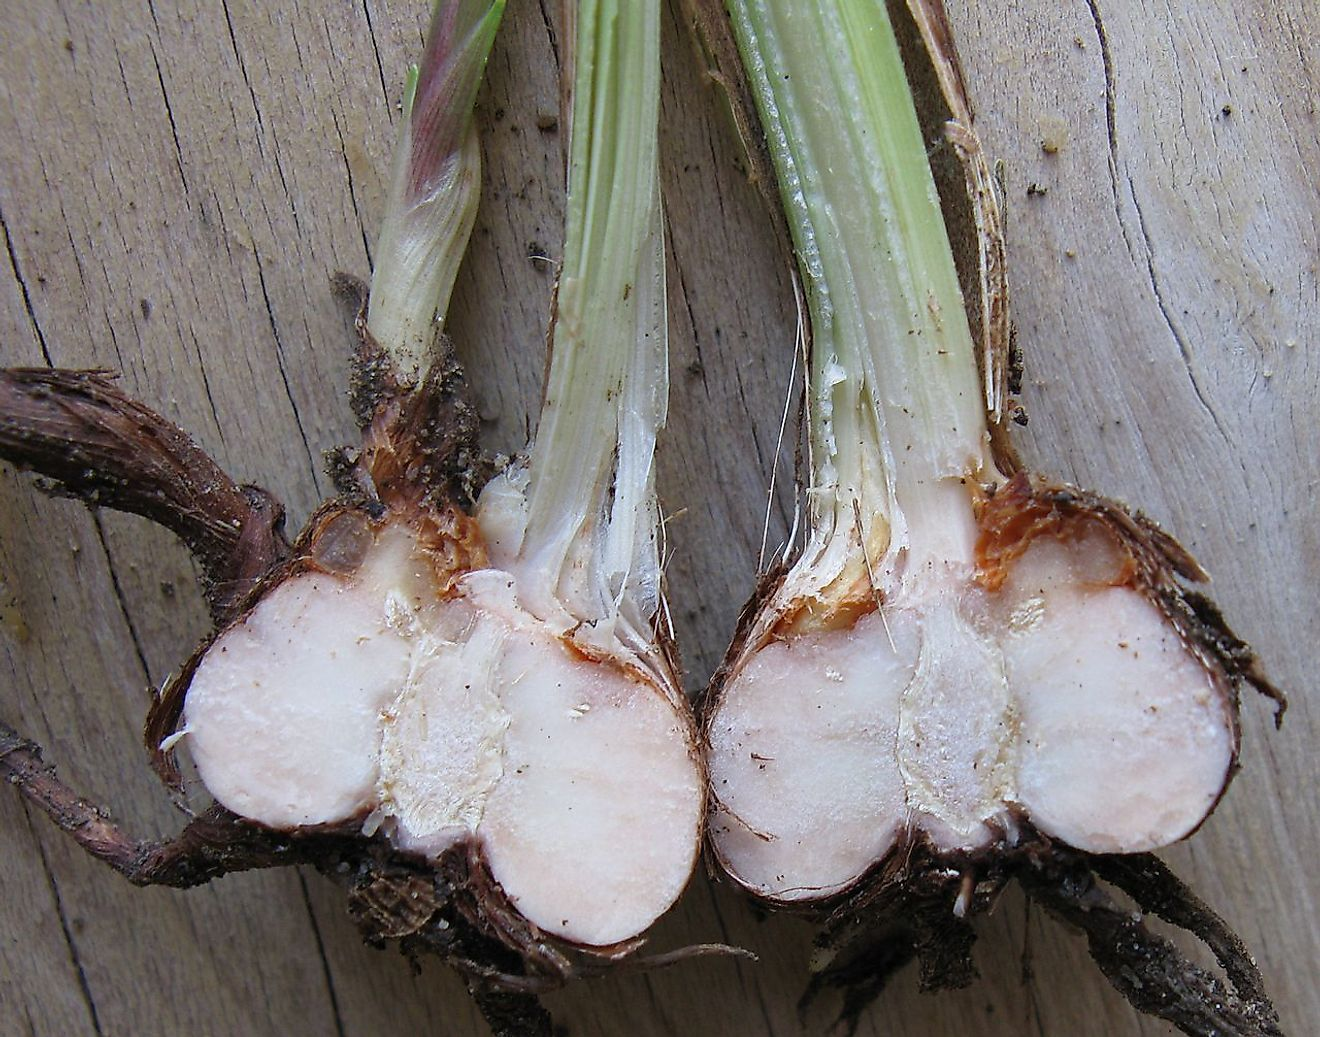 New corm growing from bud, tunic and leaves of Crocosmia. Image credit: JonRichfield/Wikimedia.org